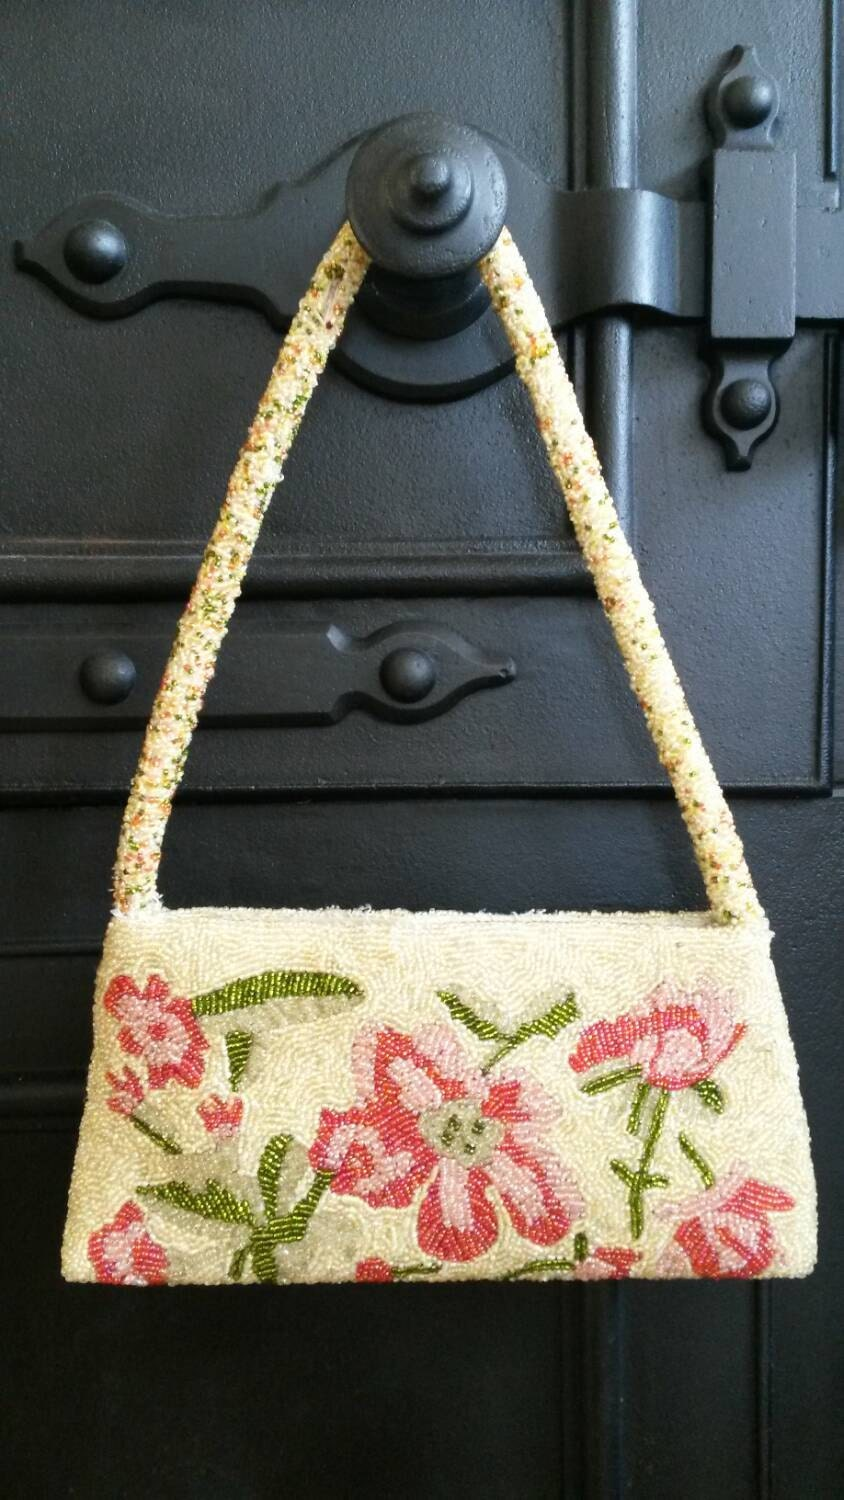 Vintage Laura Ashley Hand Made Bead Handbag Intricate Flowers Floral Pattern. Evening Bag